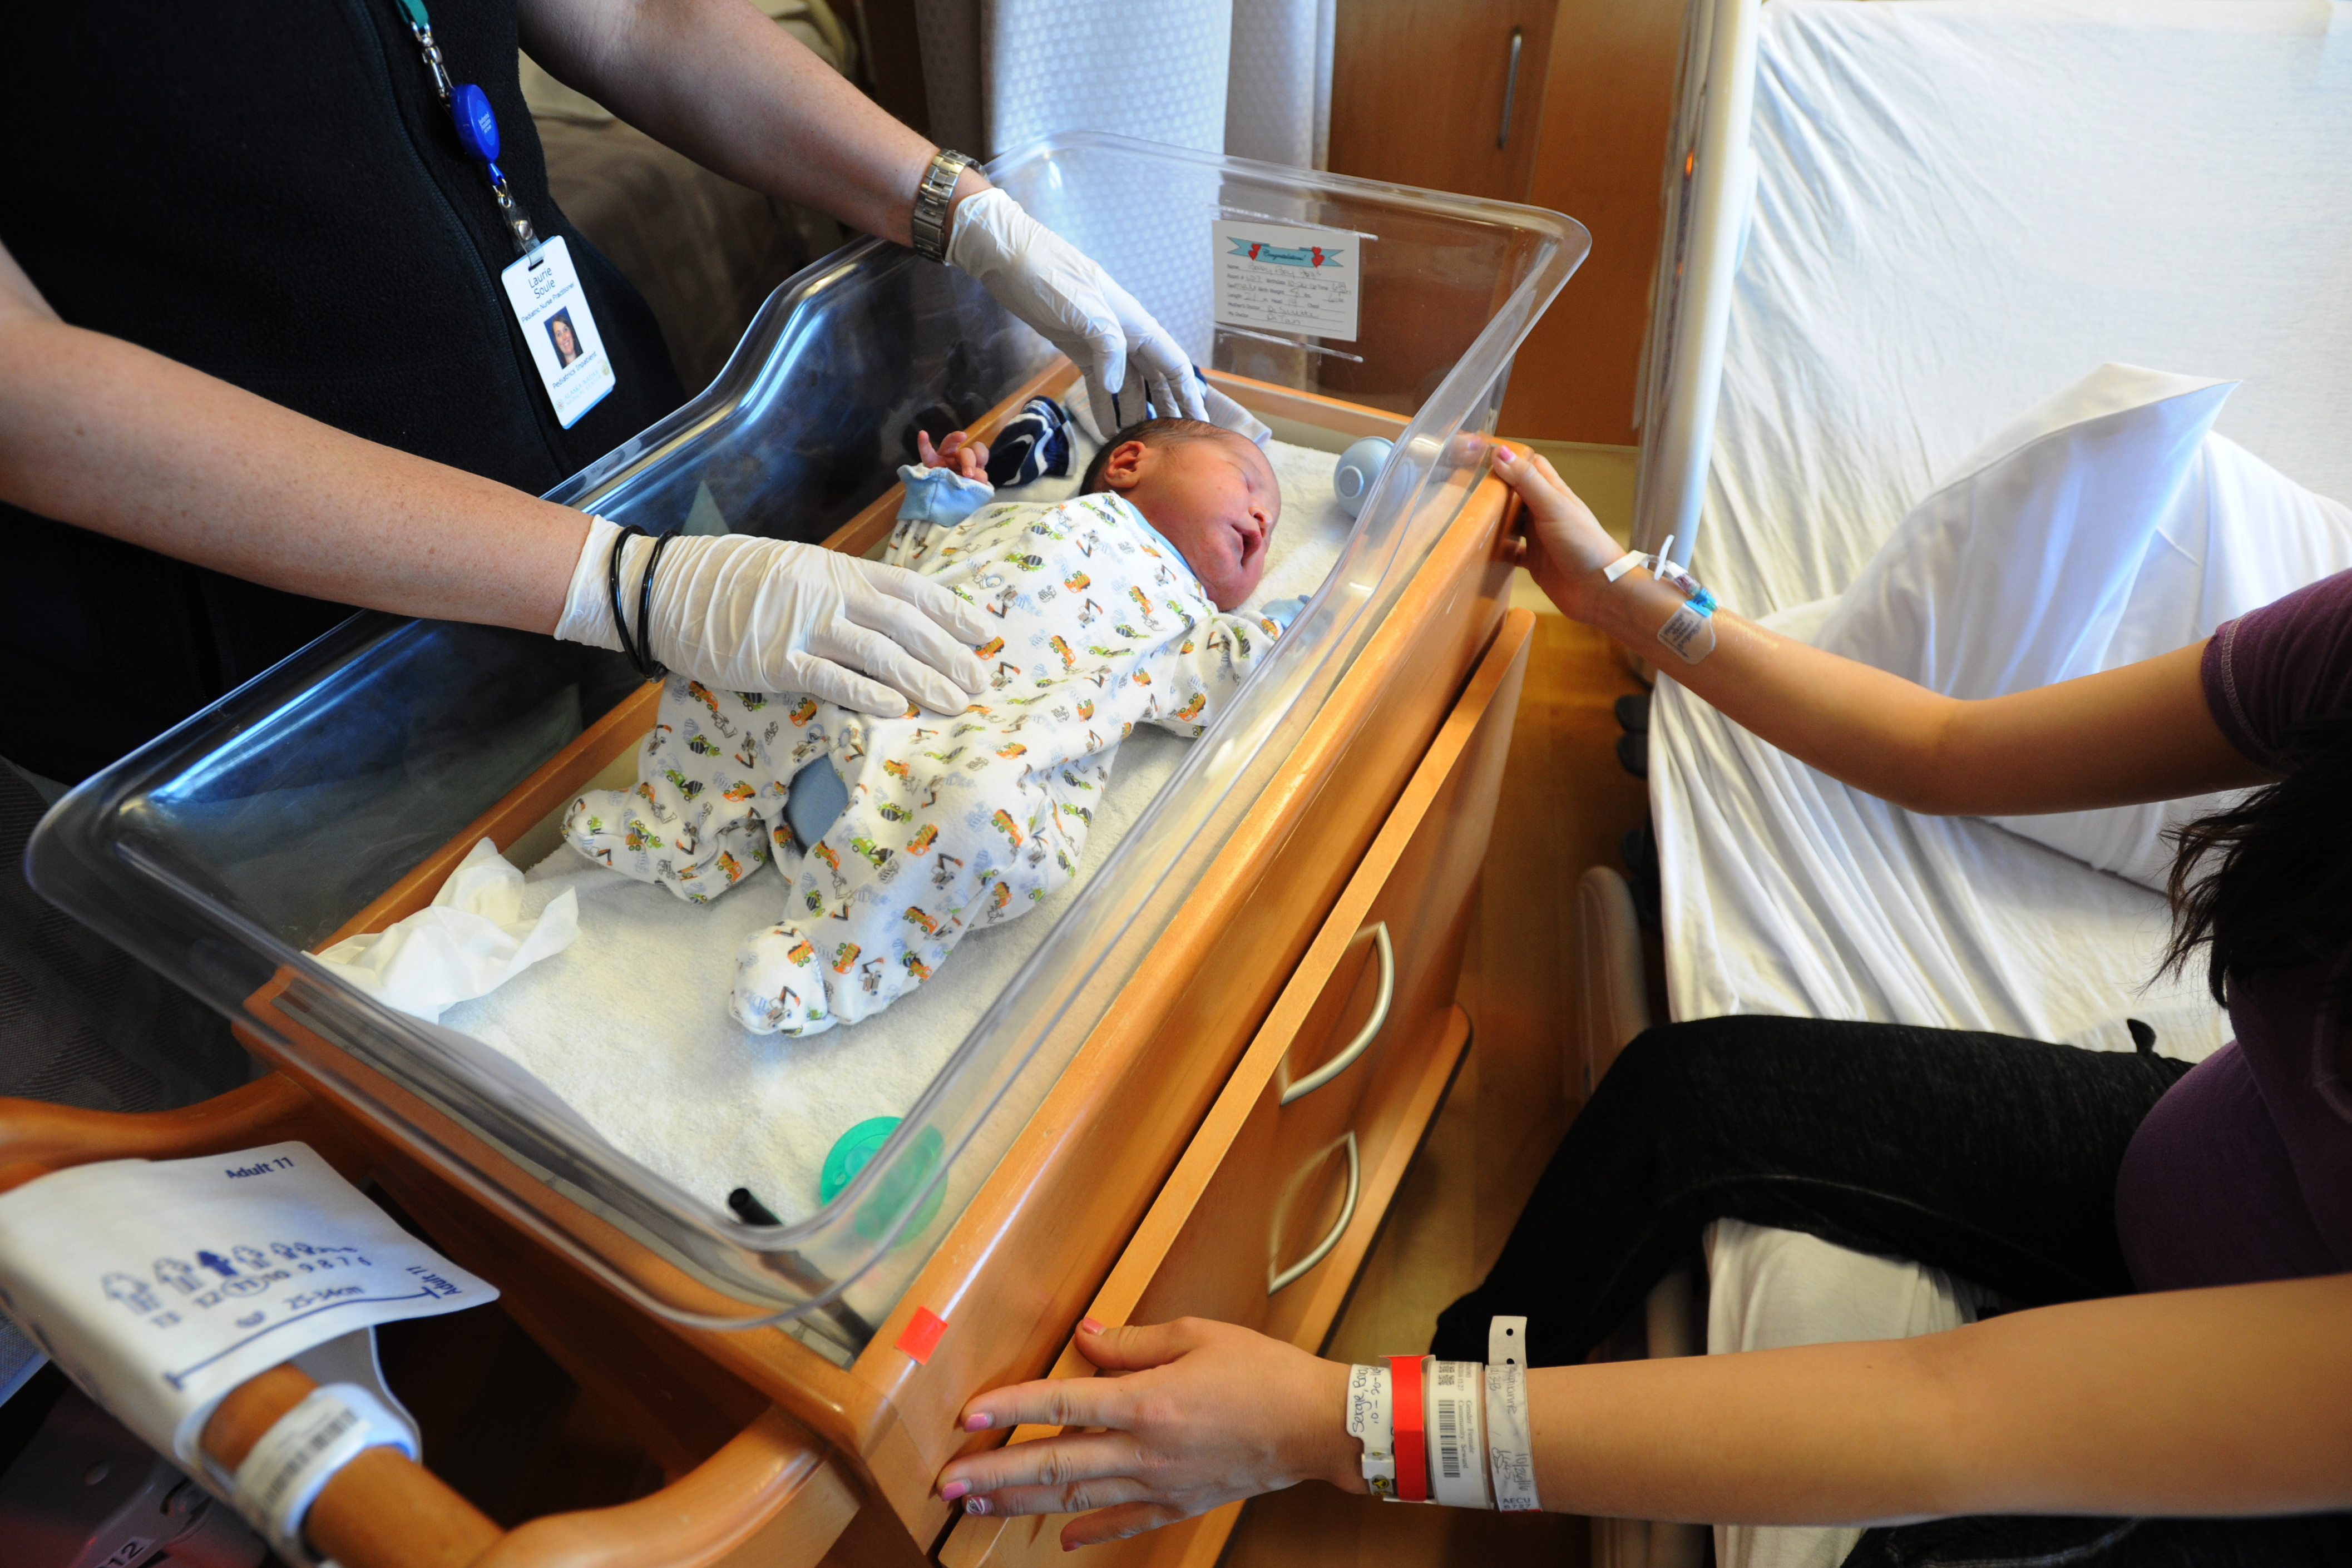 Newborn Ashton Sergie is tended to by nurse practitioner Laurie Soule, left, and mom Sophianne Sergie on Thursday, Oct. 27, 2016, in Family Birthing Services at the Alaska Native Medical Center. Ashton was set to have a blood sample taken later in the day for screening for CPT1A Arctic variant and other conditions. (Erik Hill / Alaska Dispatch News)